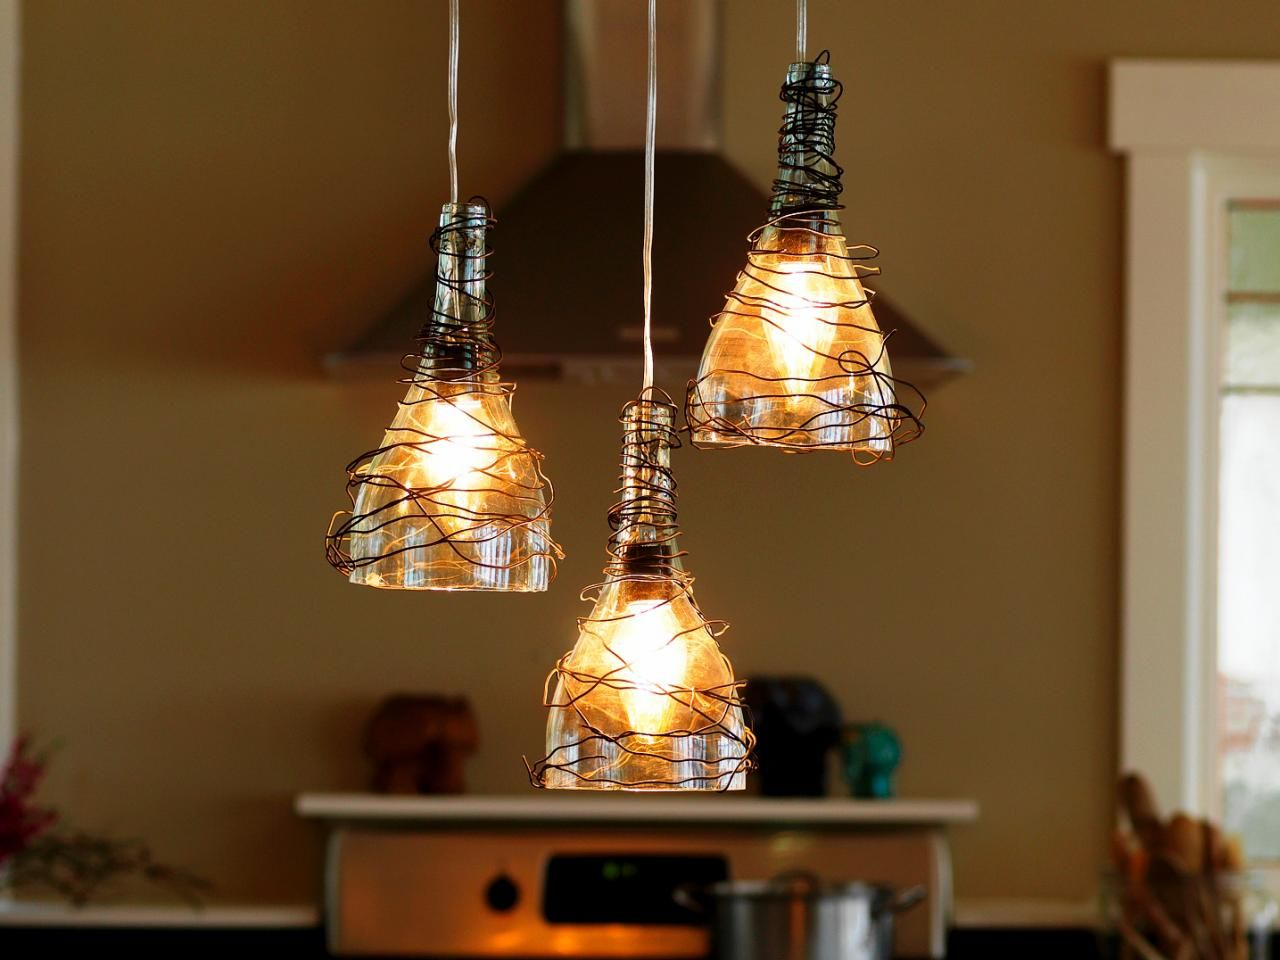 Diy chandeliers that will light up your day how to make a pendant lighting chandelier from glass bottles arubaitofo Images